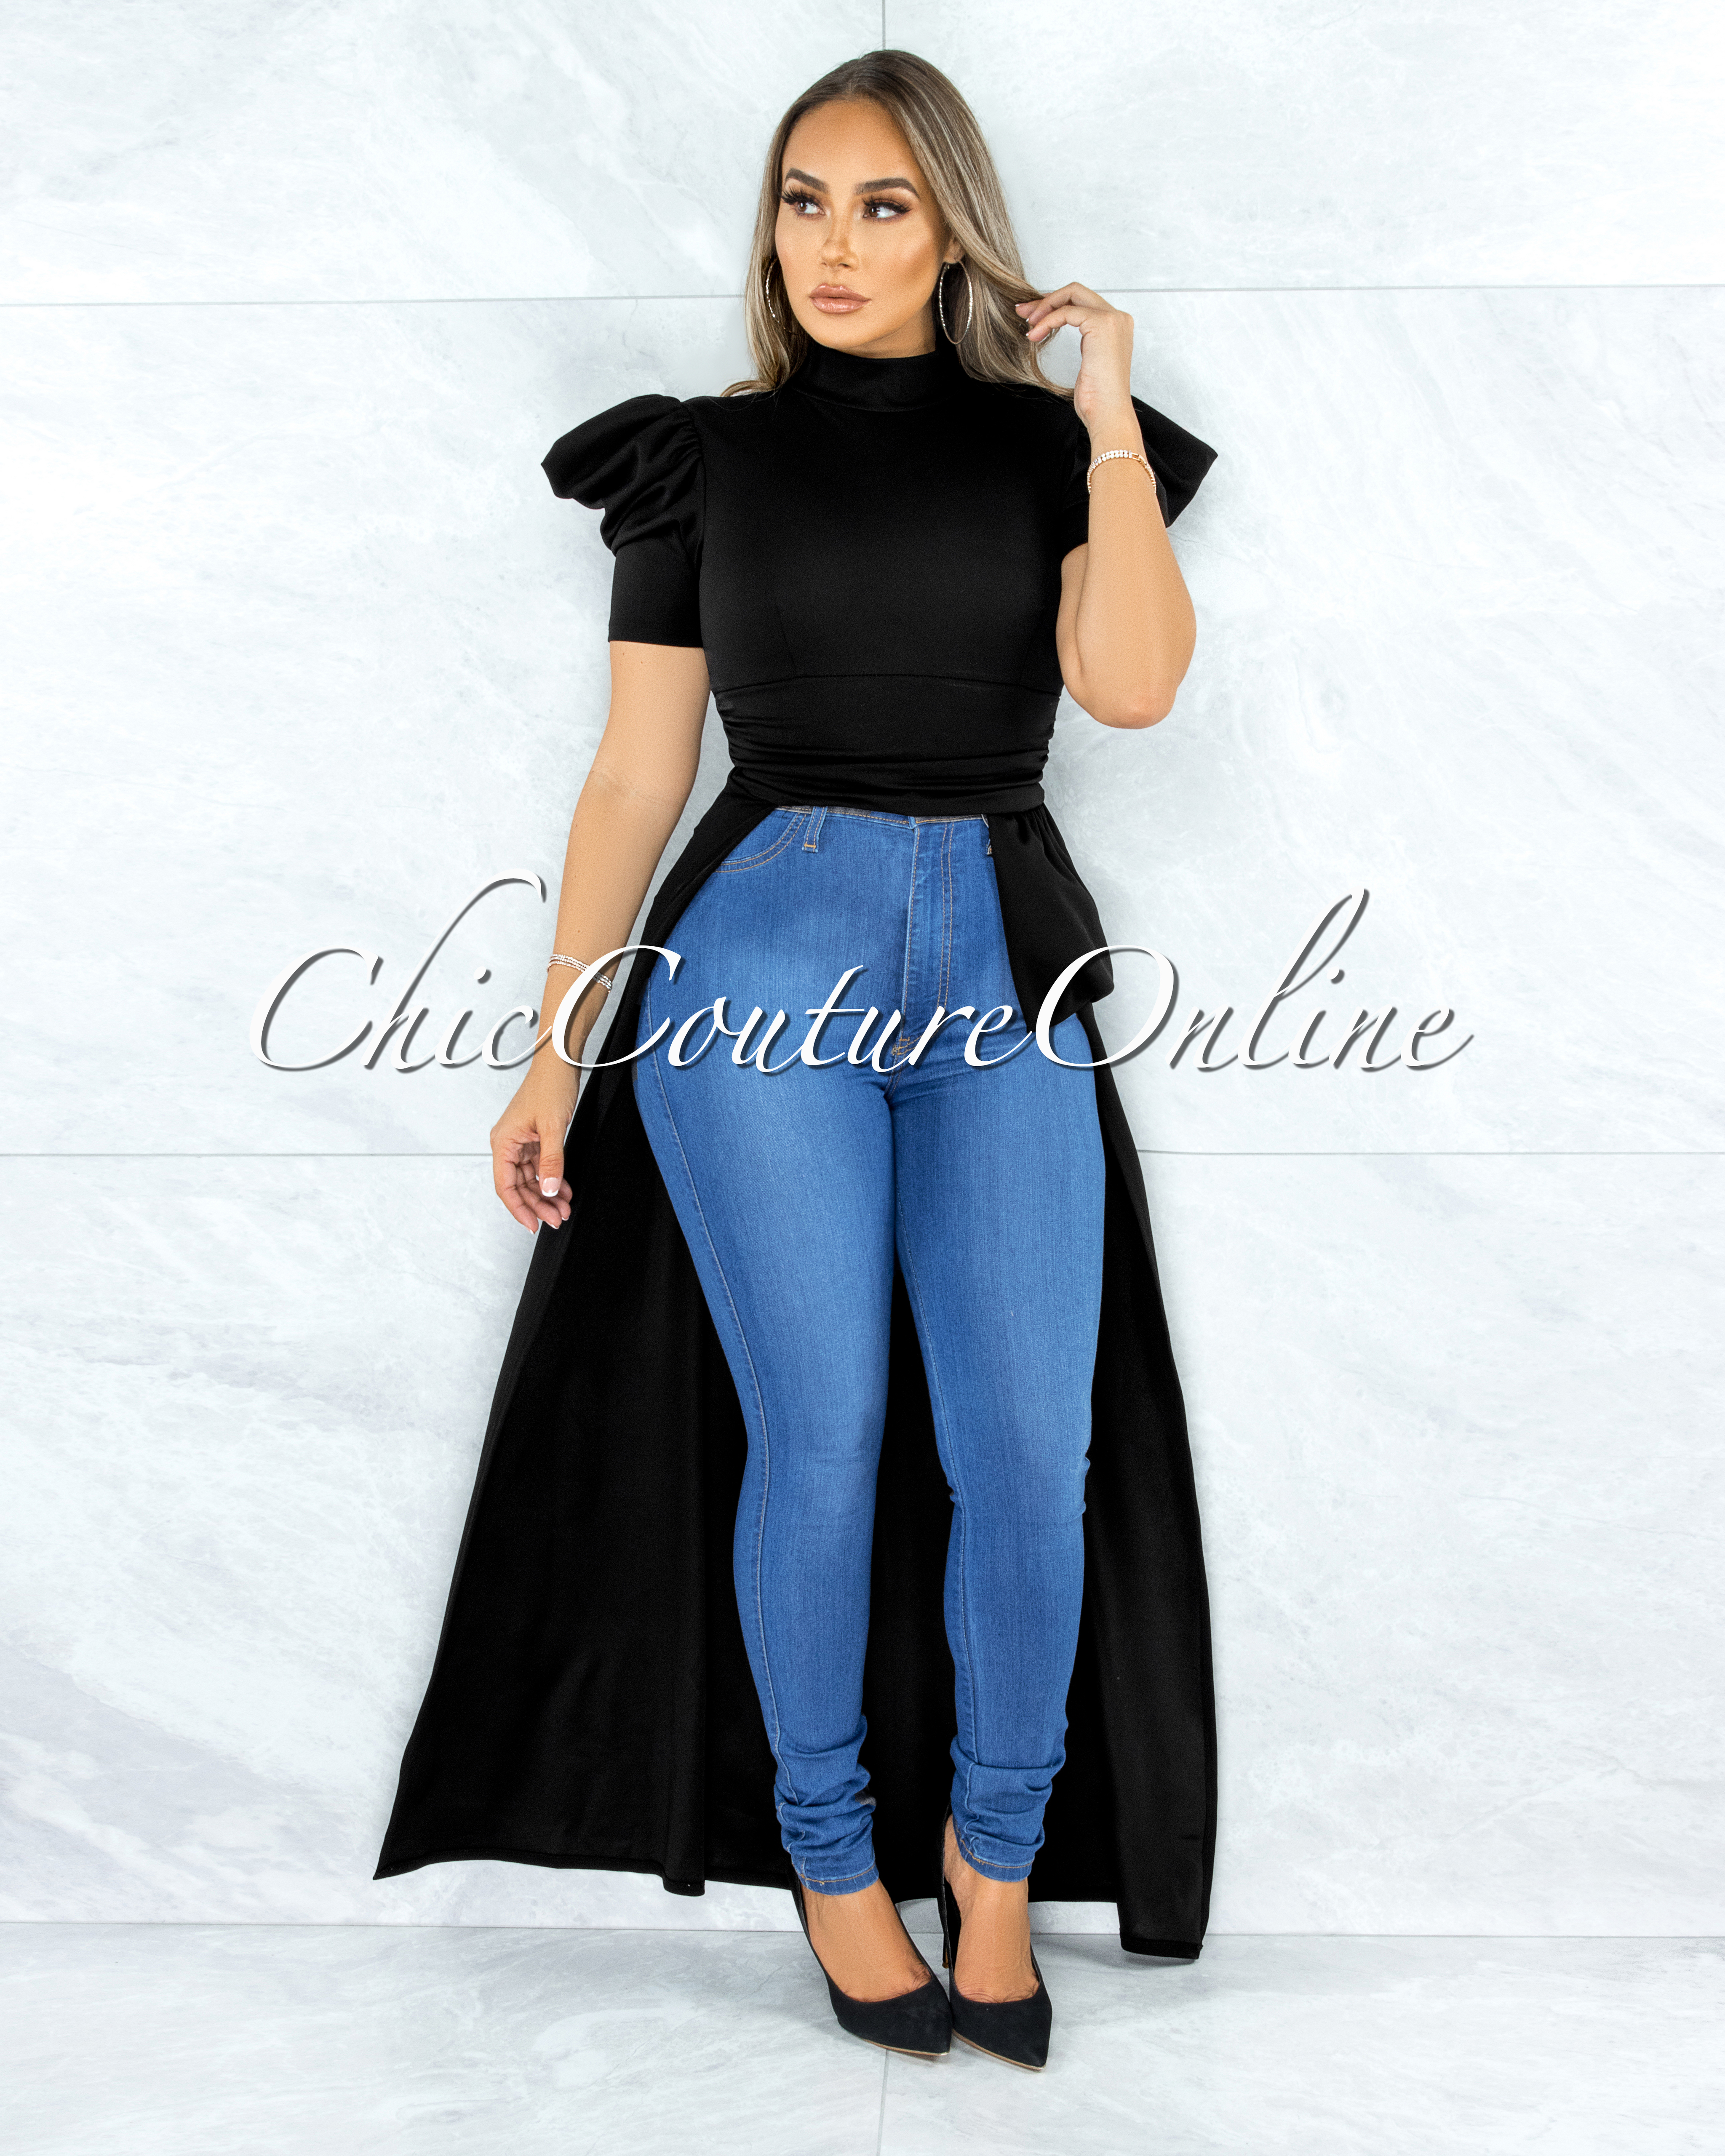 Farnley Black Dramatic High-Low Puffy Sleeves Top